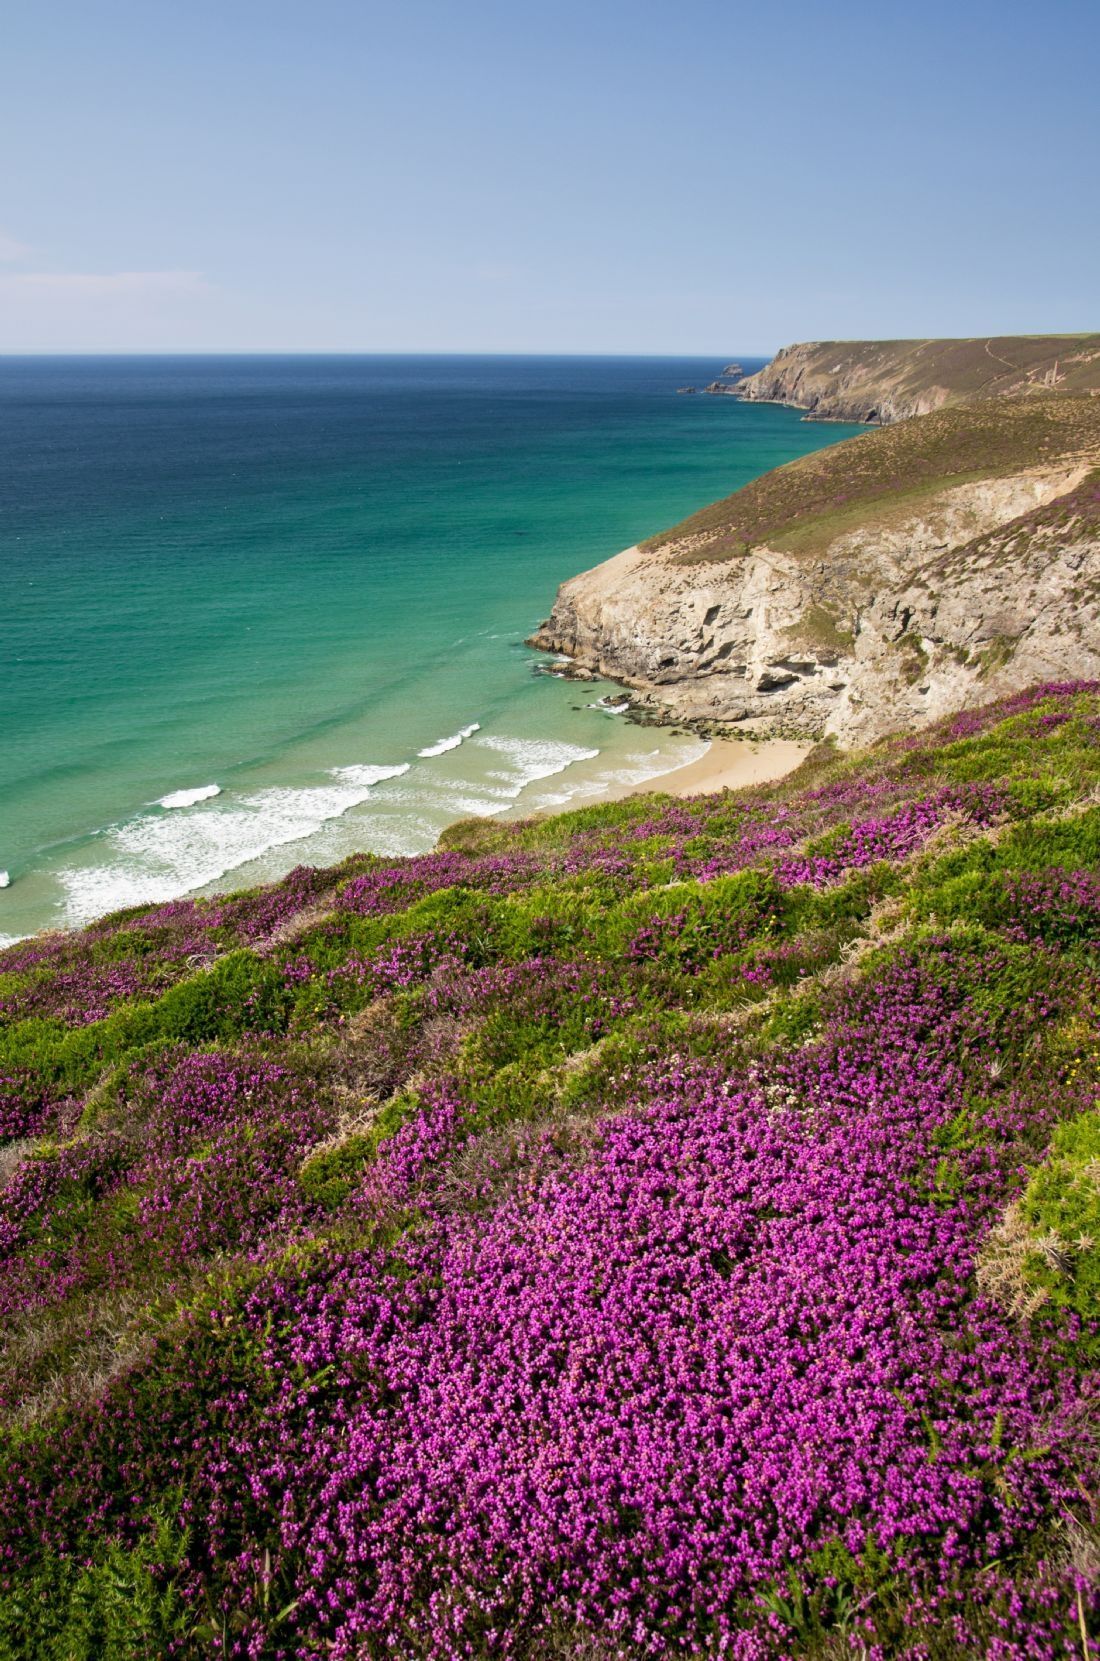 Pete Hemington | Cornish coast near Porthtowan